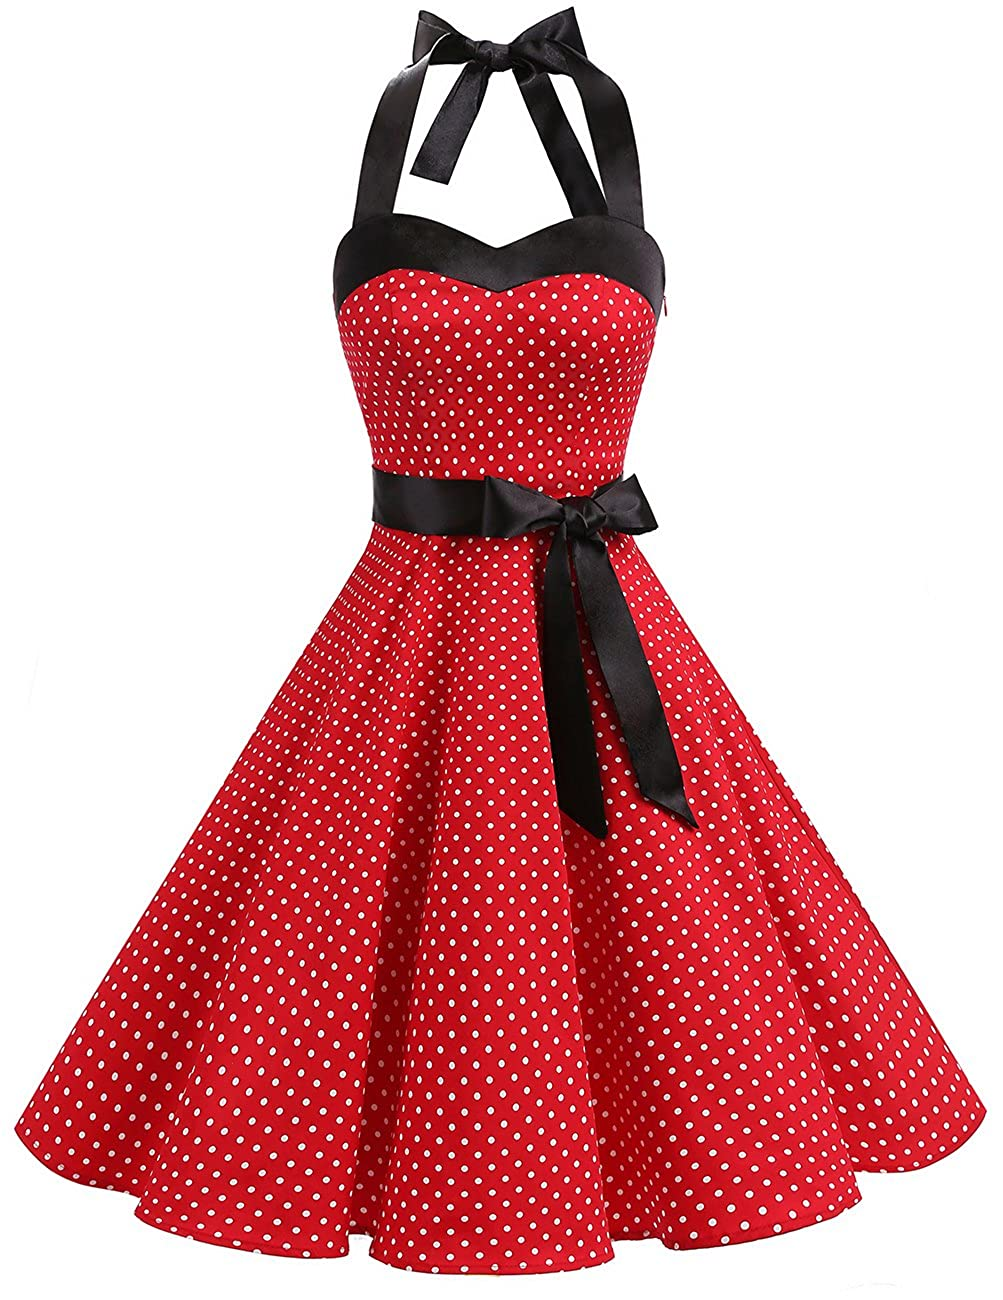 TALLA XXL. Dresstells® Halter 50s Rockabilly Polka Dots Audrey Dress Retro Cocktail Dress Red Small White Dot XXL